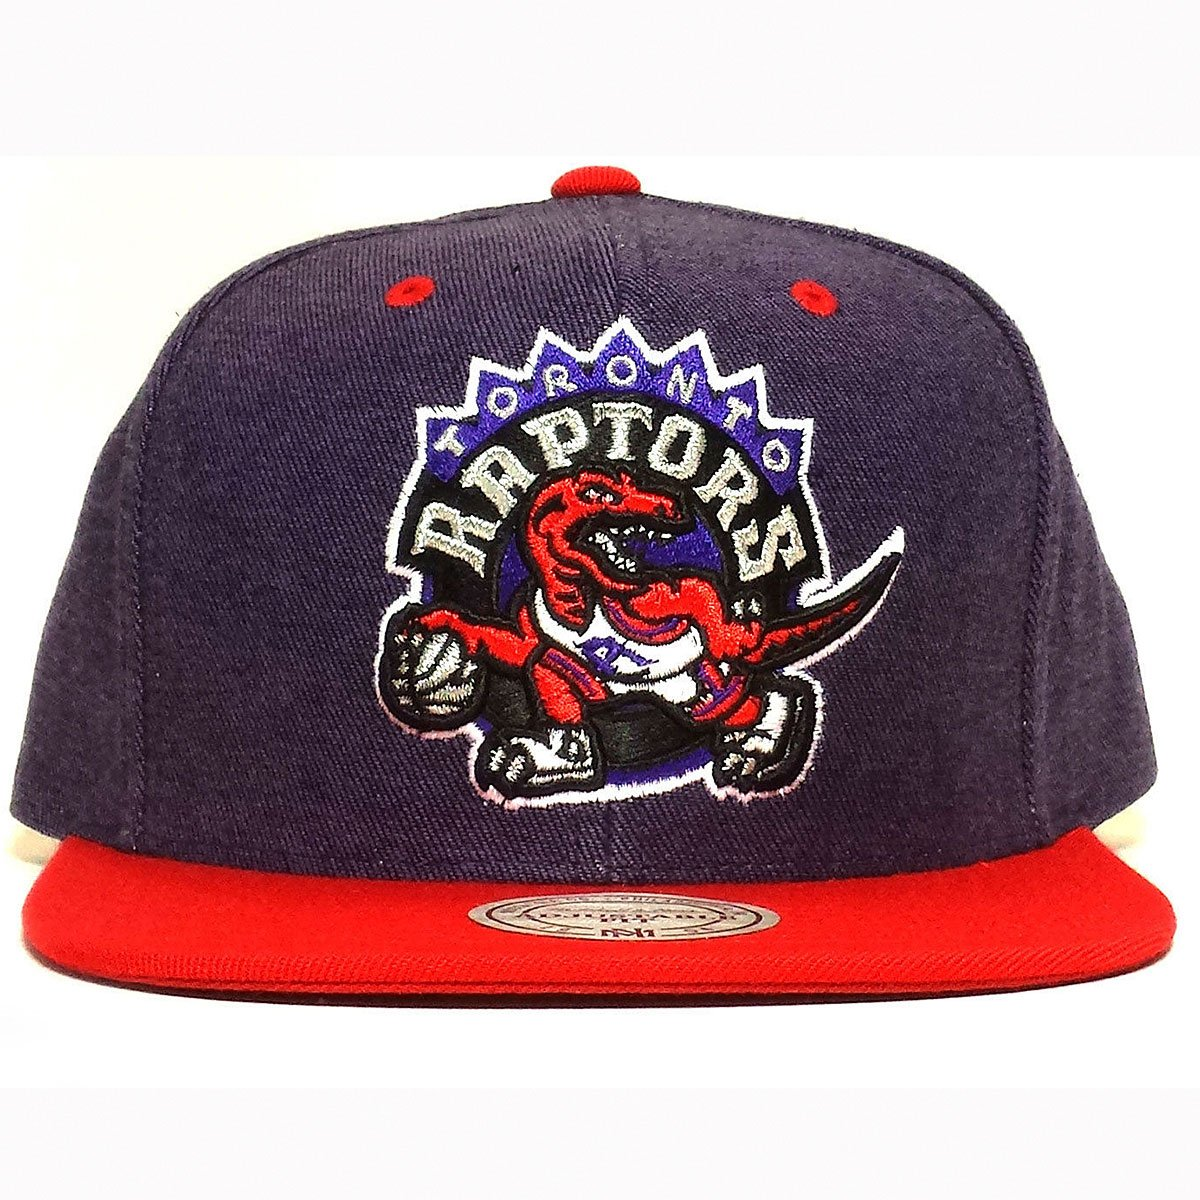 best sneakers 6f732 c643b Amazon.com   Mitchell Ness Denim Harry 2 Tone NBA Chicago Bulls Team  Quality Snapback Hat   Sports   Outdoors